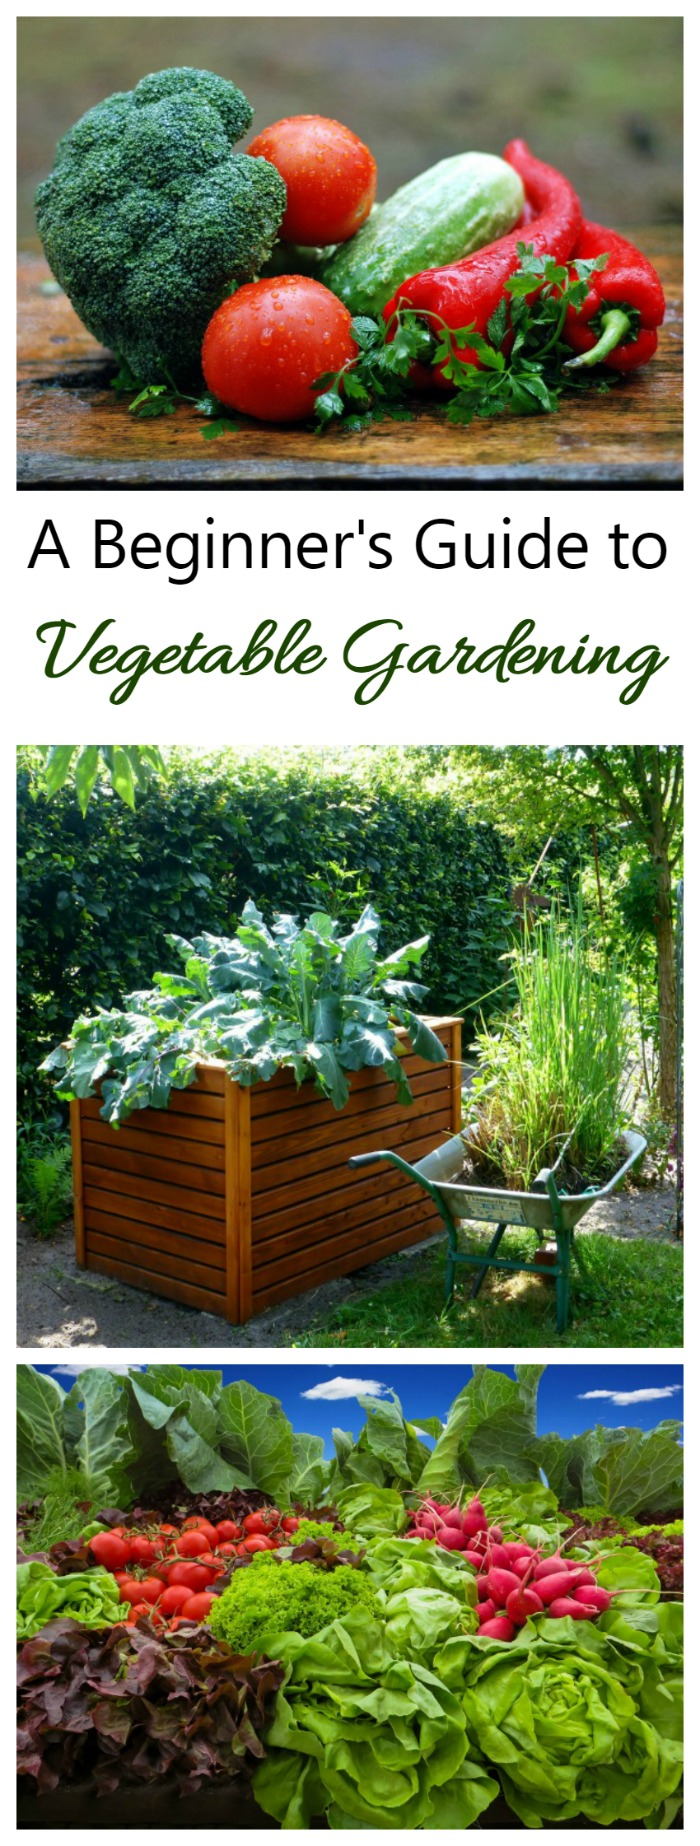 Growing your own vegetables is one of the highlights of summer gardening. There is nothing quite like the taste and freshness of home grown veggies! My vegetable gardening guide will lead you through the process,, from starting seeds to growing in containers to the actual harvest.